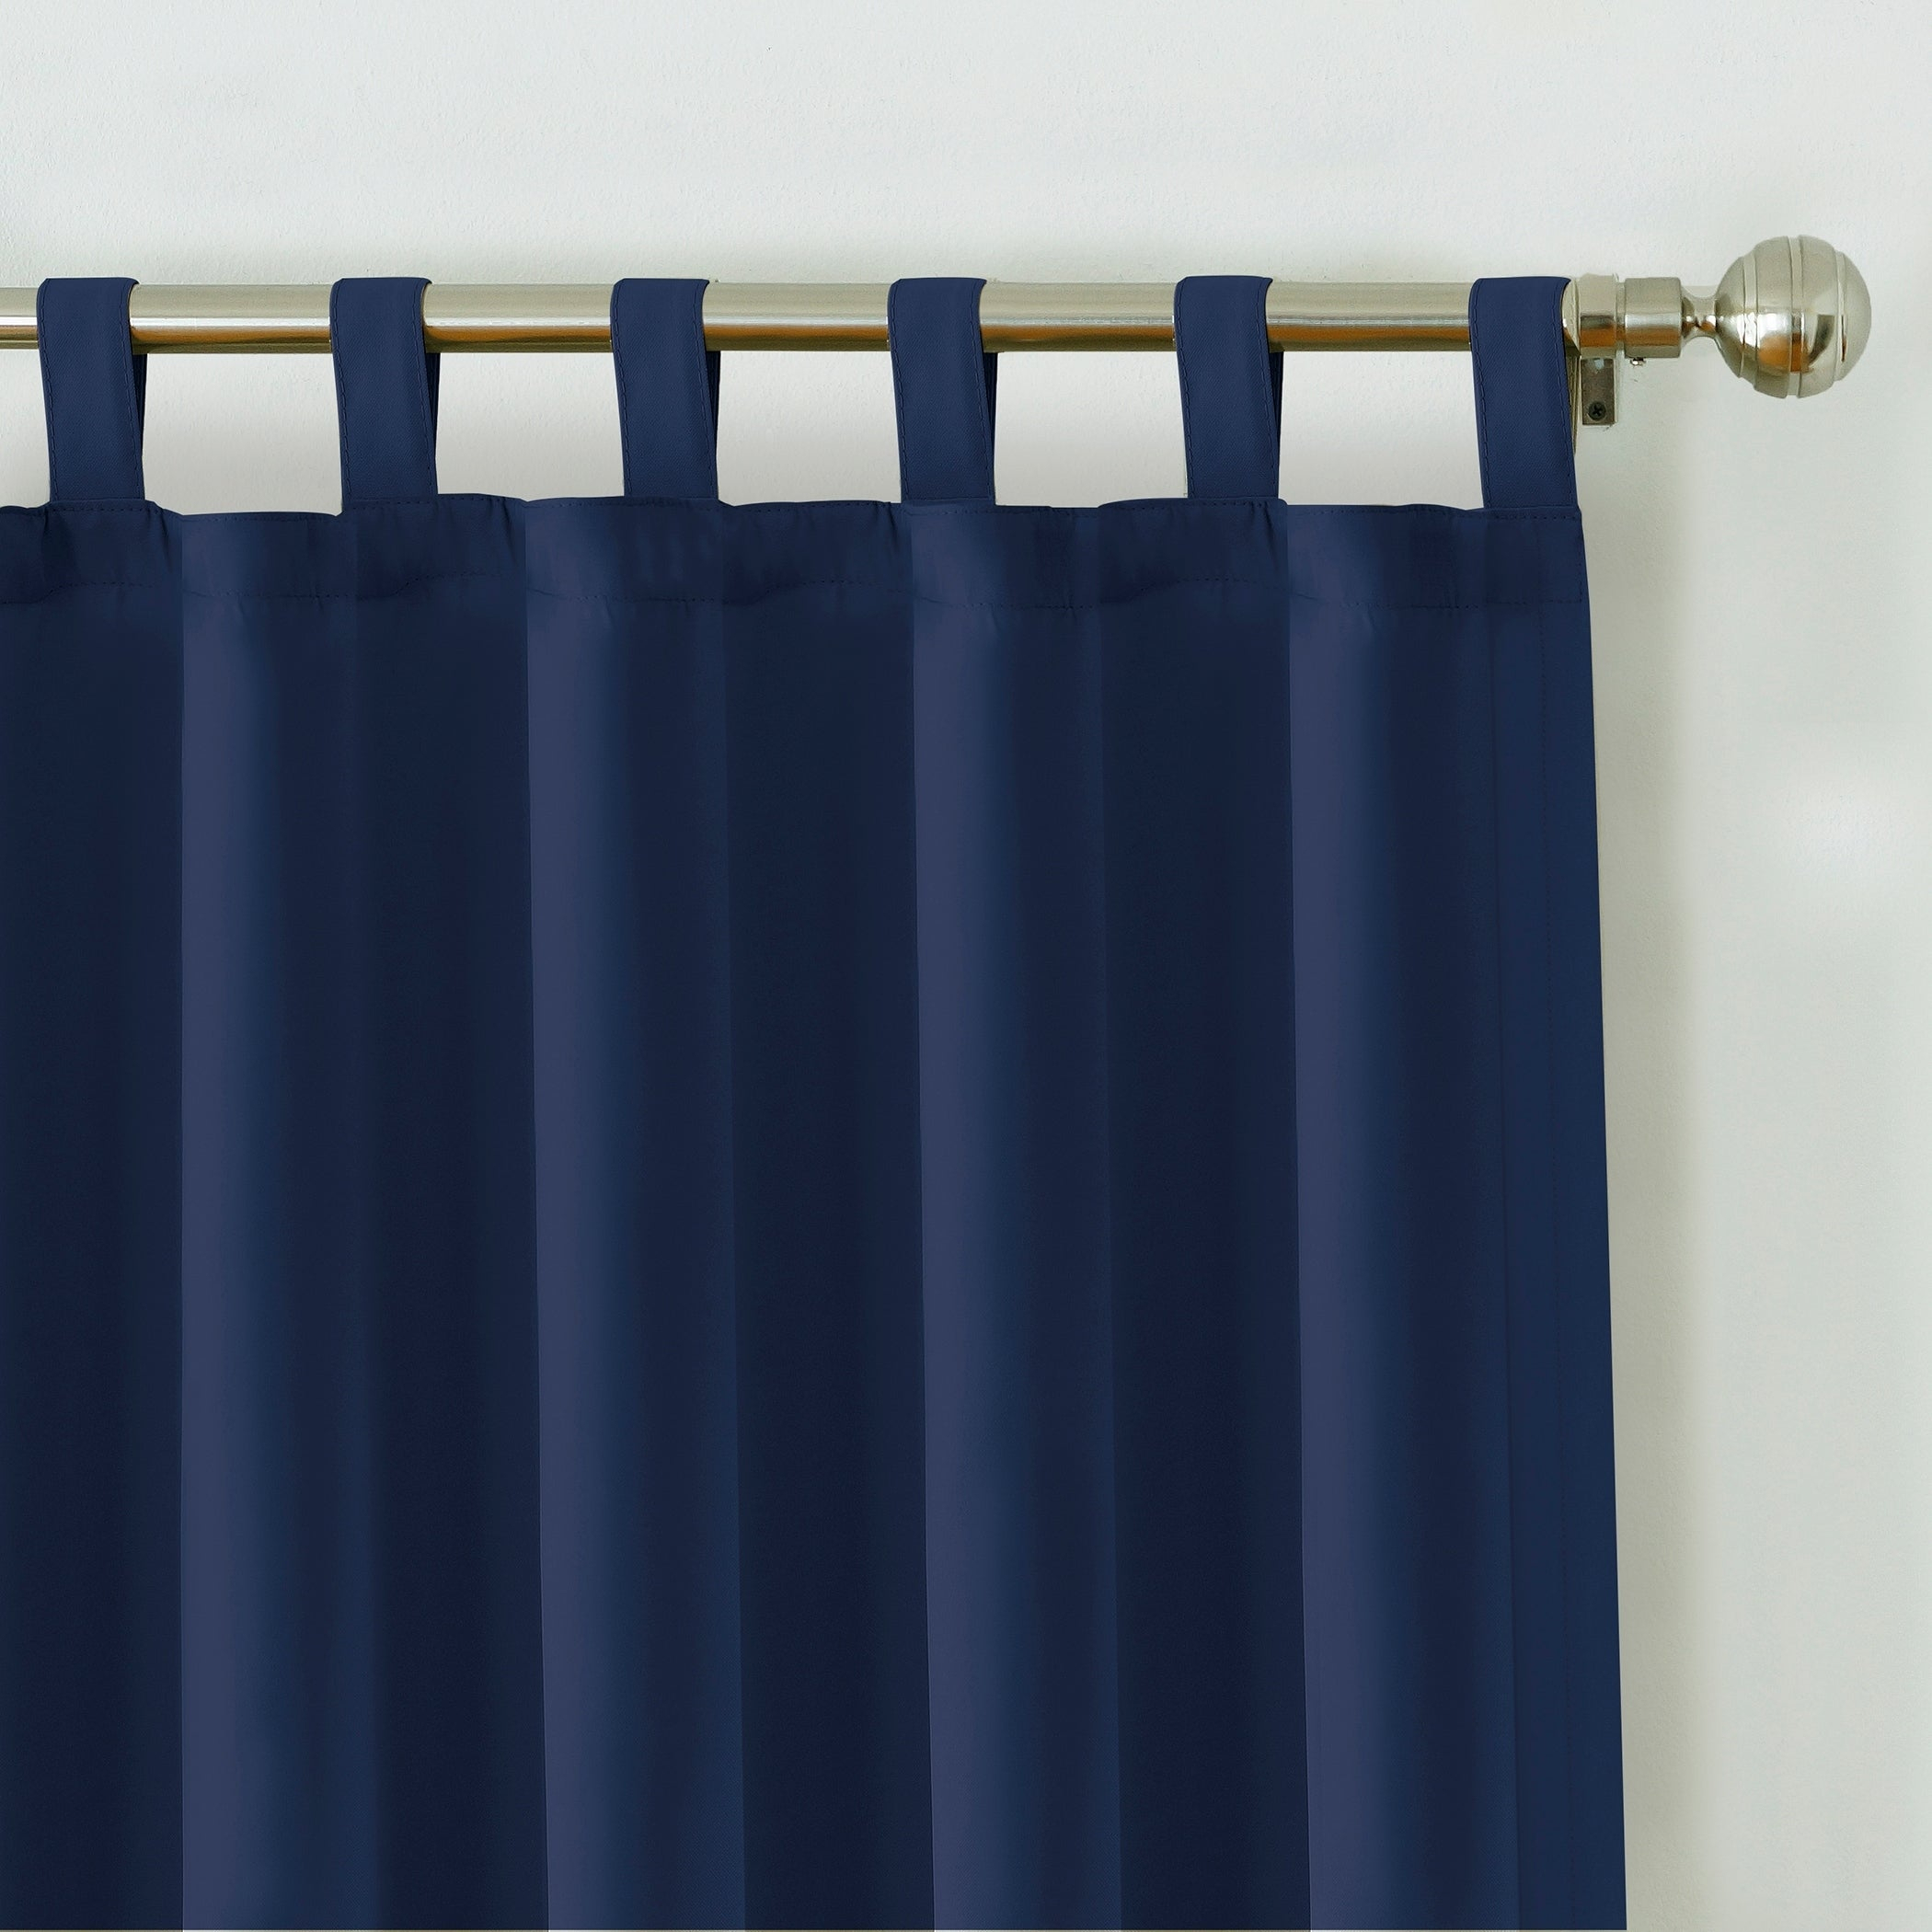 Matine Indoor/outdoor Curtain Panel With Regard To Matine Indoor/outdoor Curtain Panels (View 6 of 20)